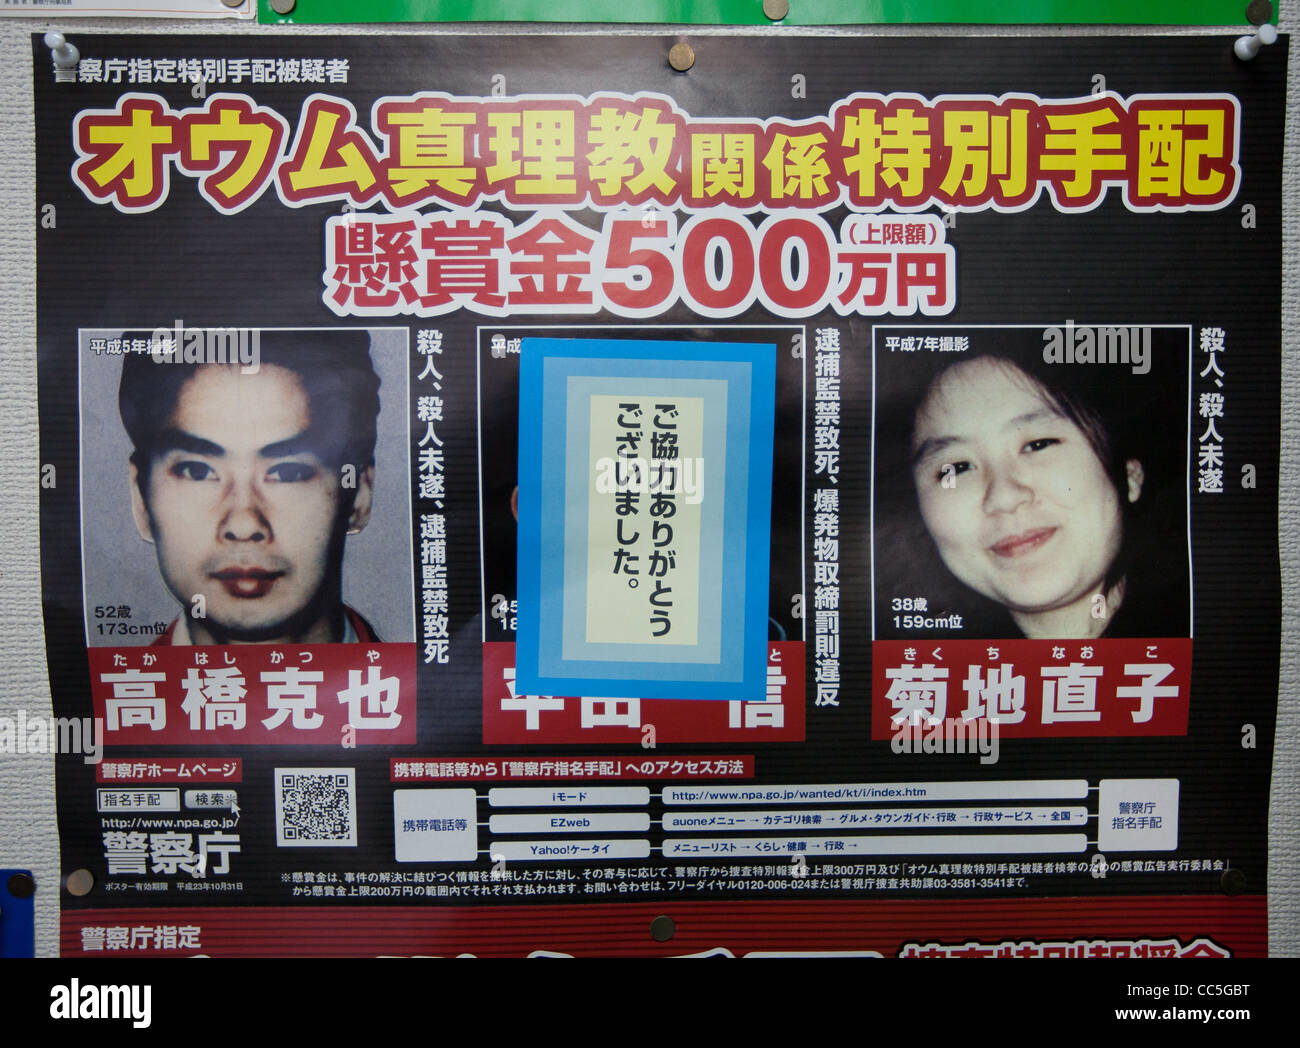 A police 'wanted' poster for members of Japanese cult 'Aum Shinrikyo' - Stock Image